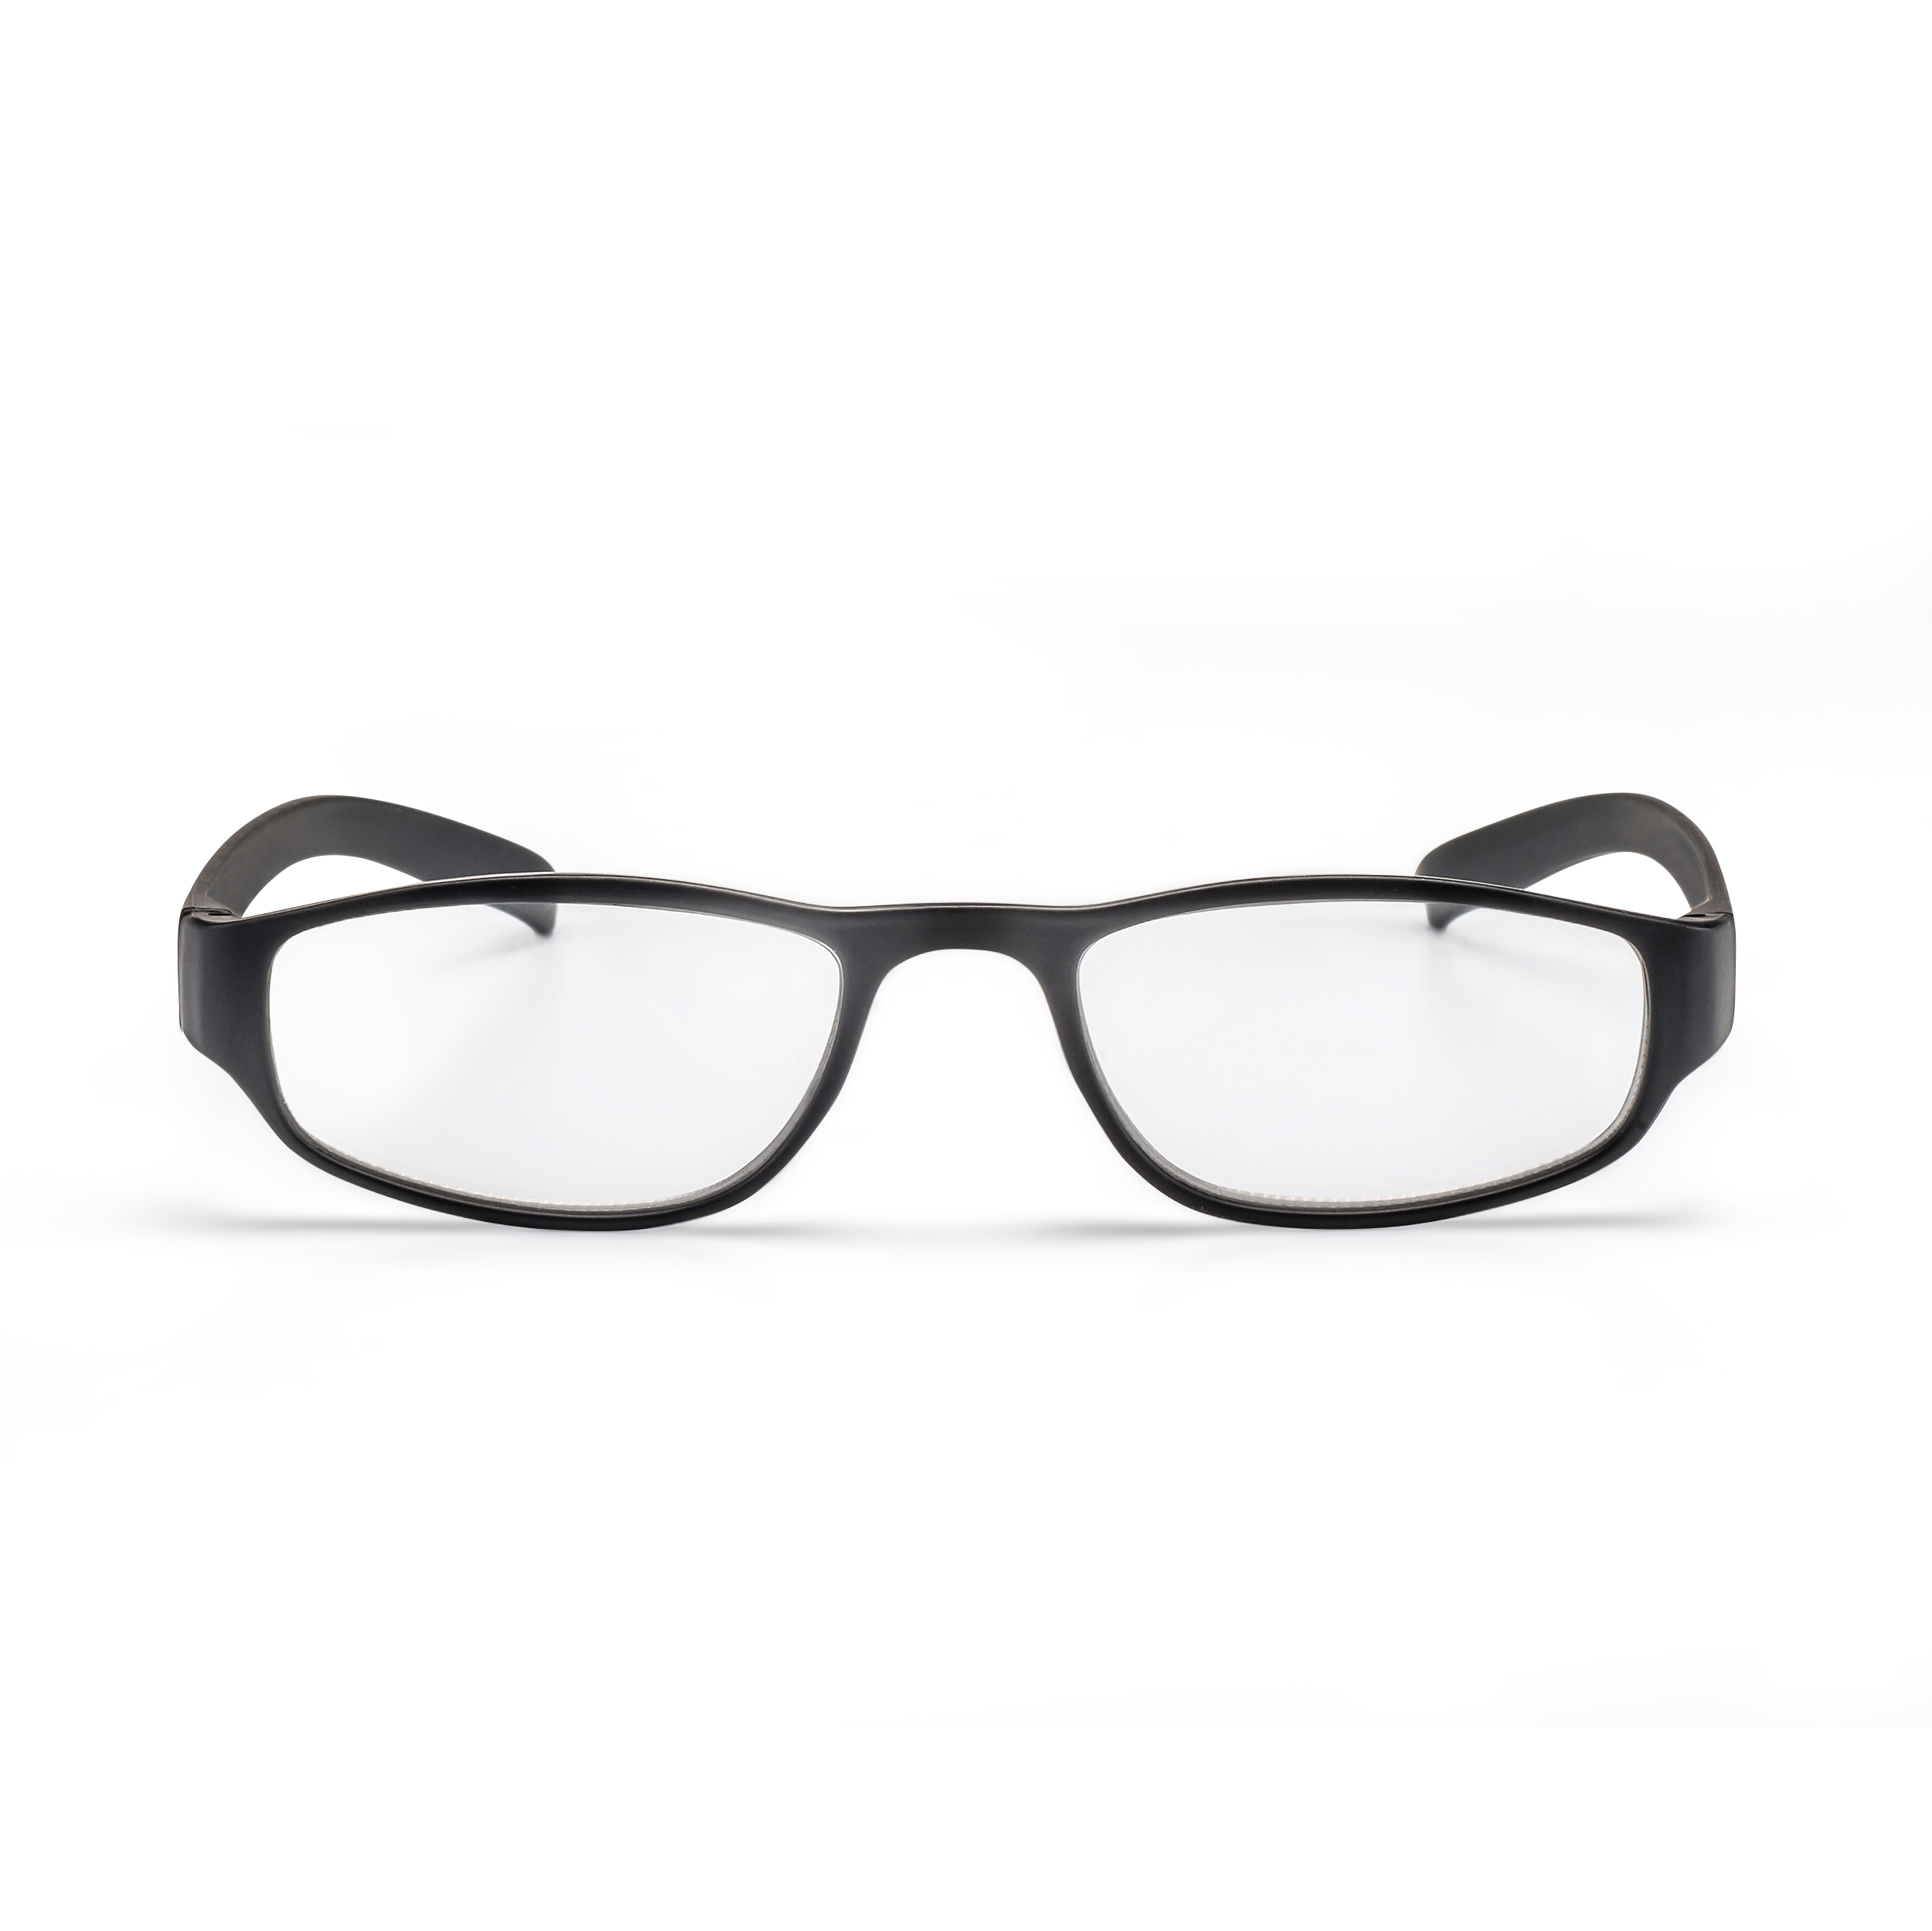 Frot view reading glasses colour look black